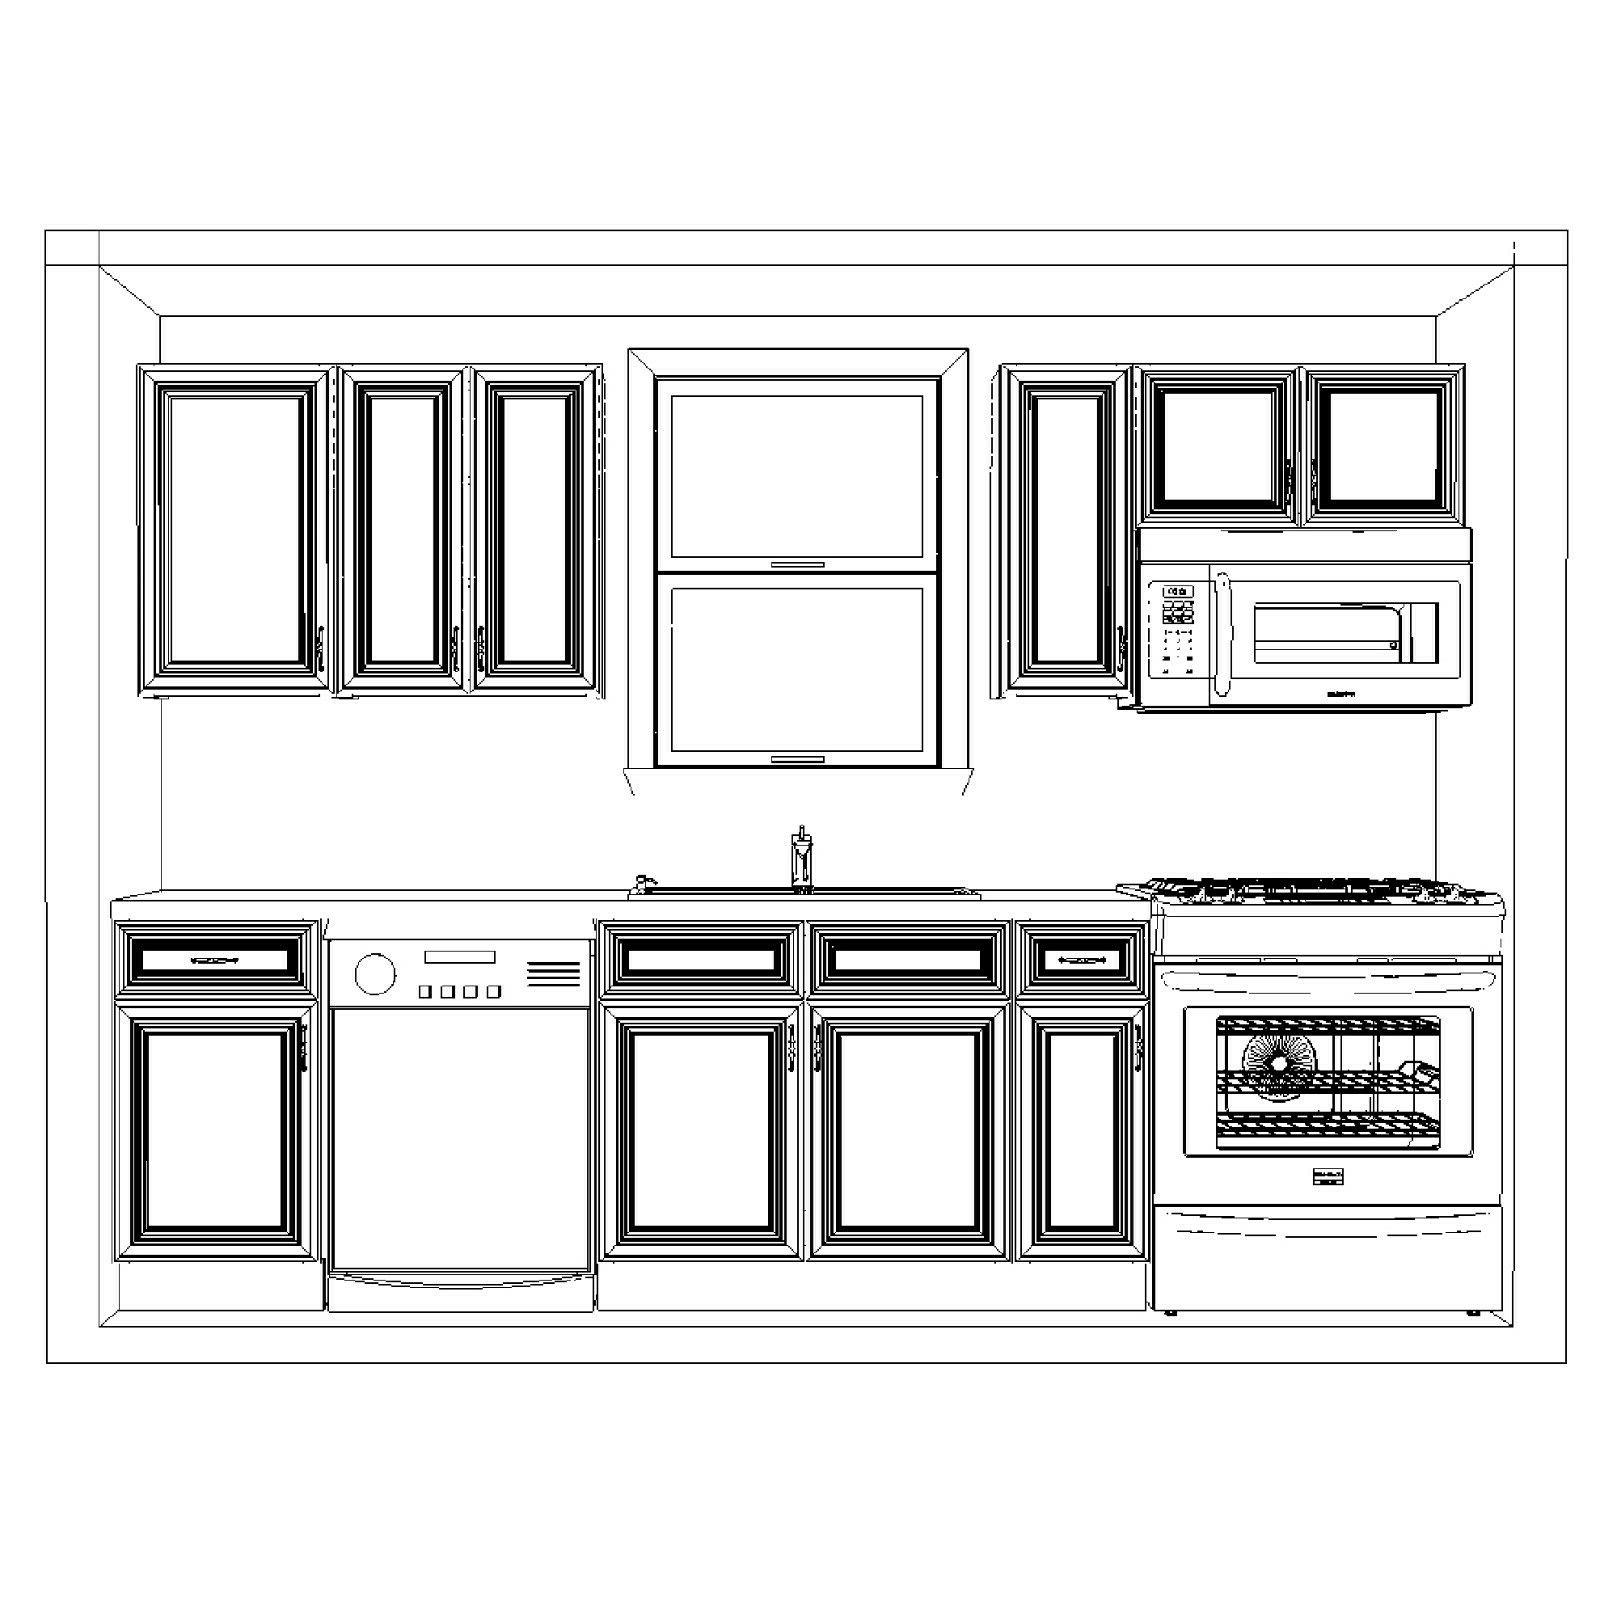 Lily Ann Cabinets 10 Foot Wood Cabinets Chocolate